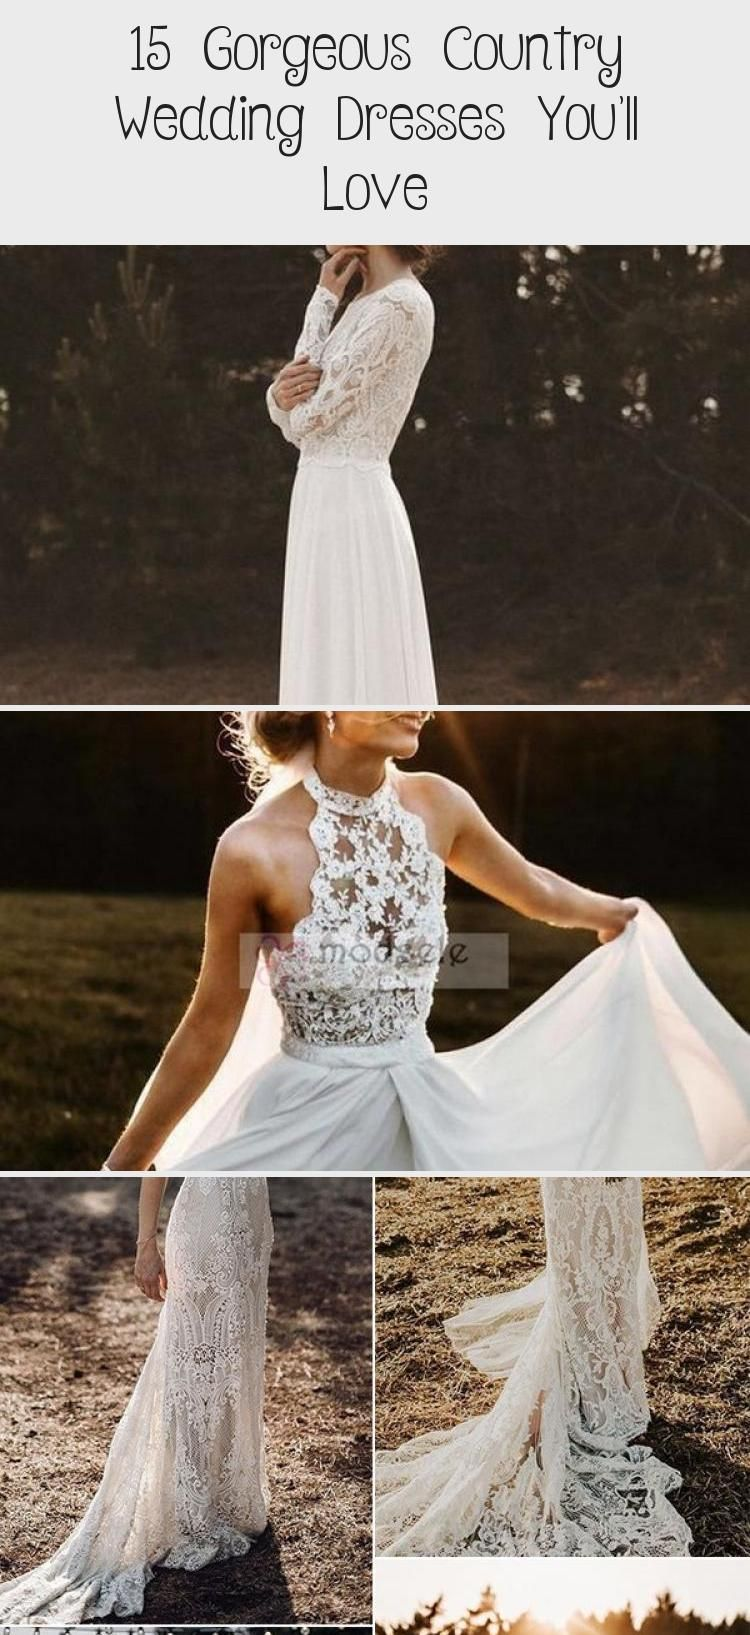 Photo of boho chic wedding dress with open back #weddingdressesTeaLength #weddingdressesP… – wedding dresses